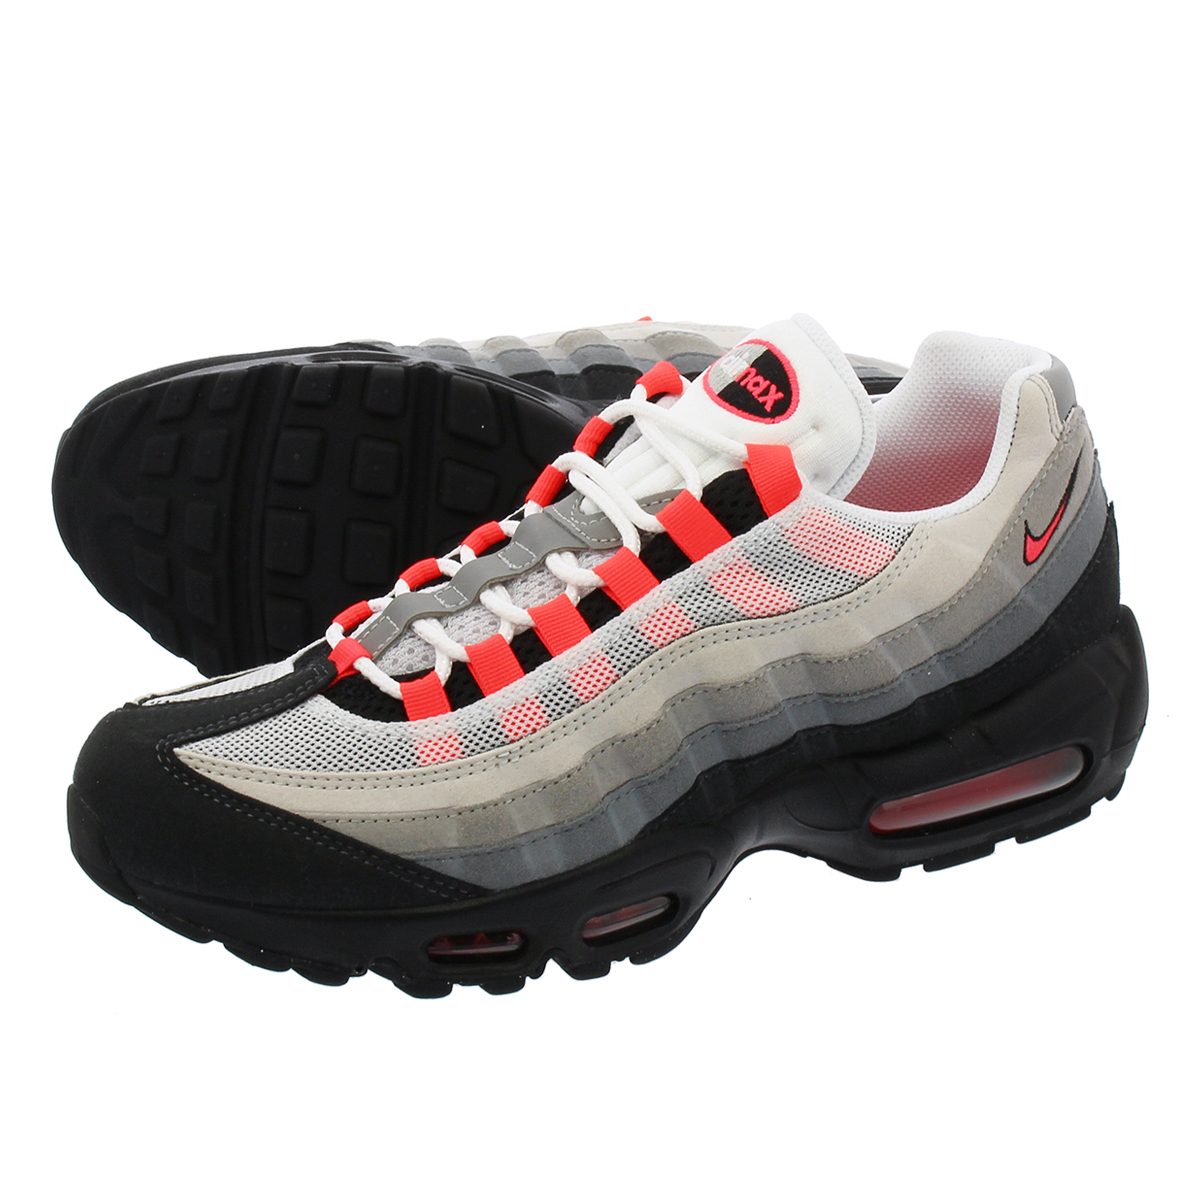 676ae7881e LOWTEX PLUS: NIKE AIR MAX 95 Kie Ney AMAX 95 WHITE/SOLAR RED/MEDIUM GREY/NEUTRAL  GREY 609,048-106 | Rakuten Global Market